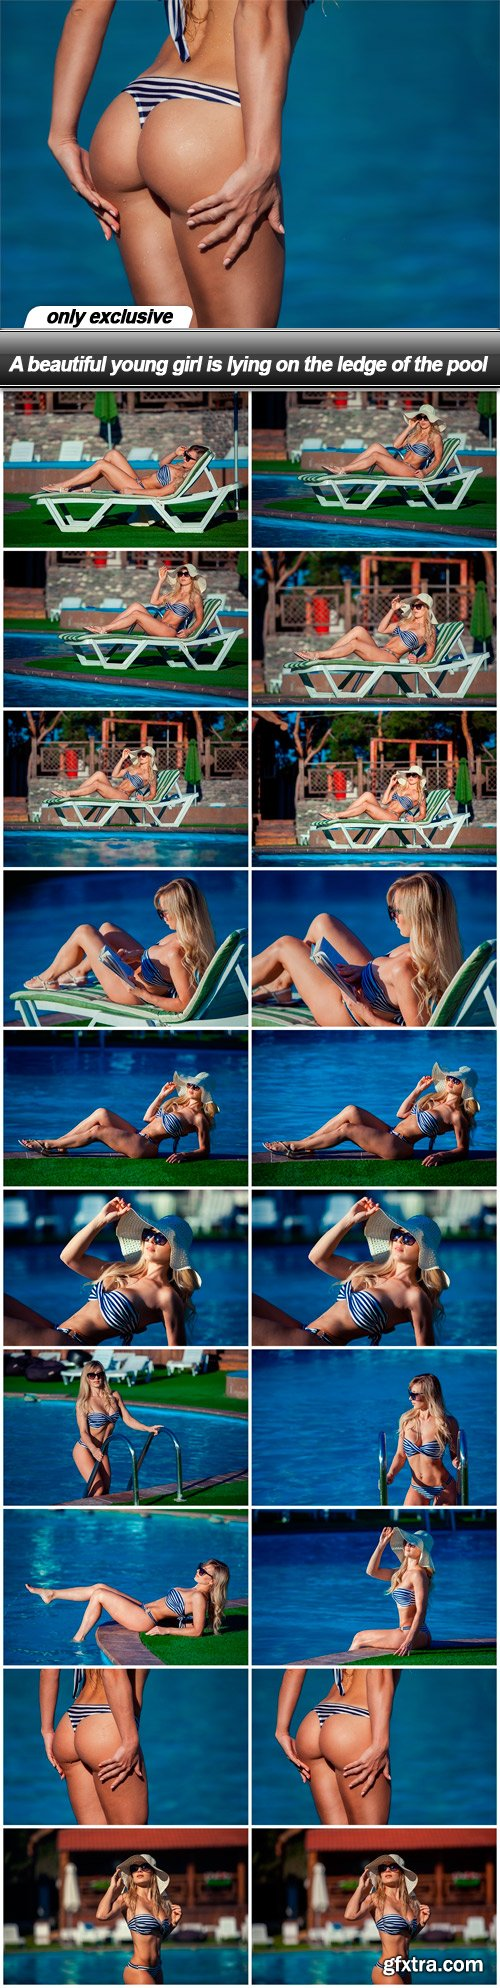 A beautiful young girl is lying on the ledge of the pool - 20 UHQ JPEG